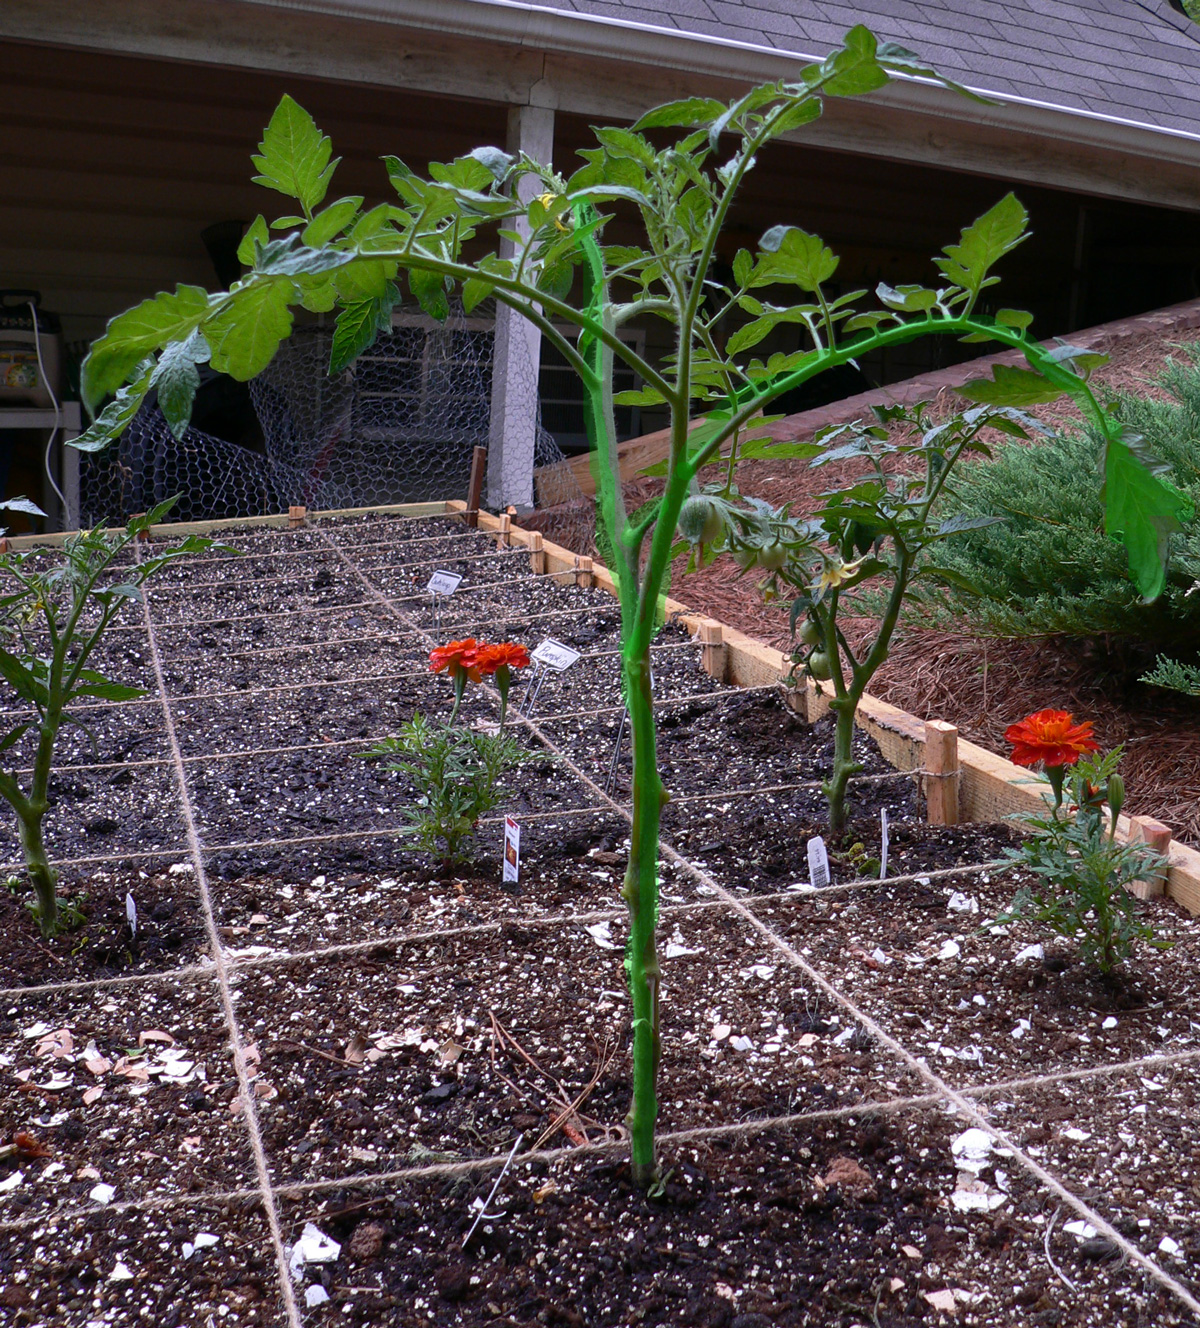 Here Is That Same Tomato Plant After I Pruned It Monday Morning.